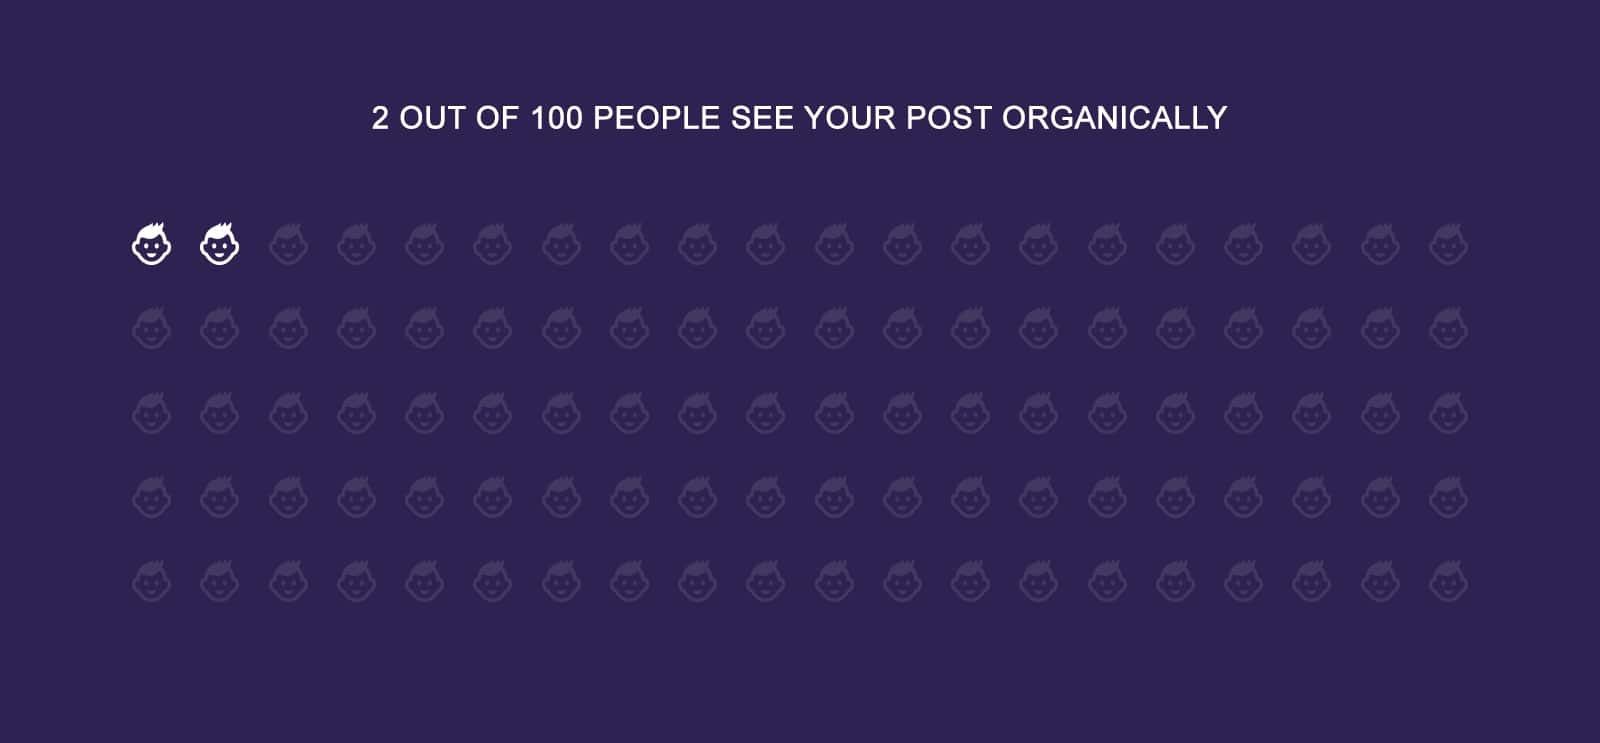 2 out of 100 people see your post organically